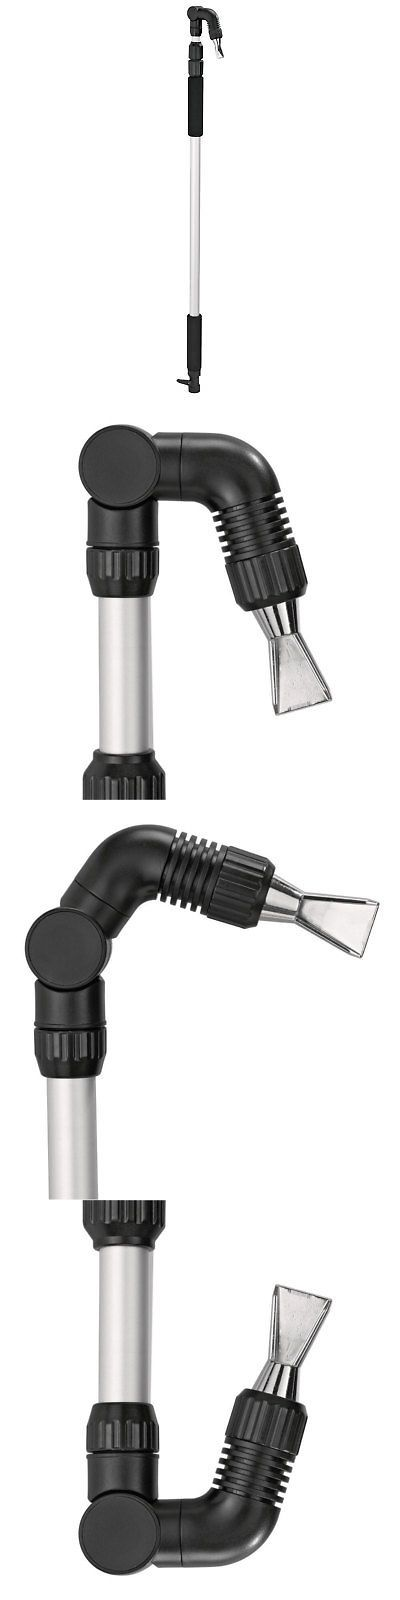 Hose Nozzles And Wands 181015 Orbit 58543 40 70 Inch Telescoping Gutter Cleaning Wand W Ratcheting Head Buy It Now Onl Cleaning Gutters Wands Hose Nozzle